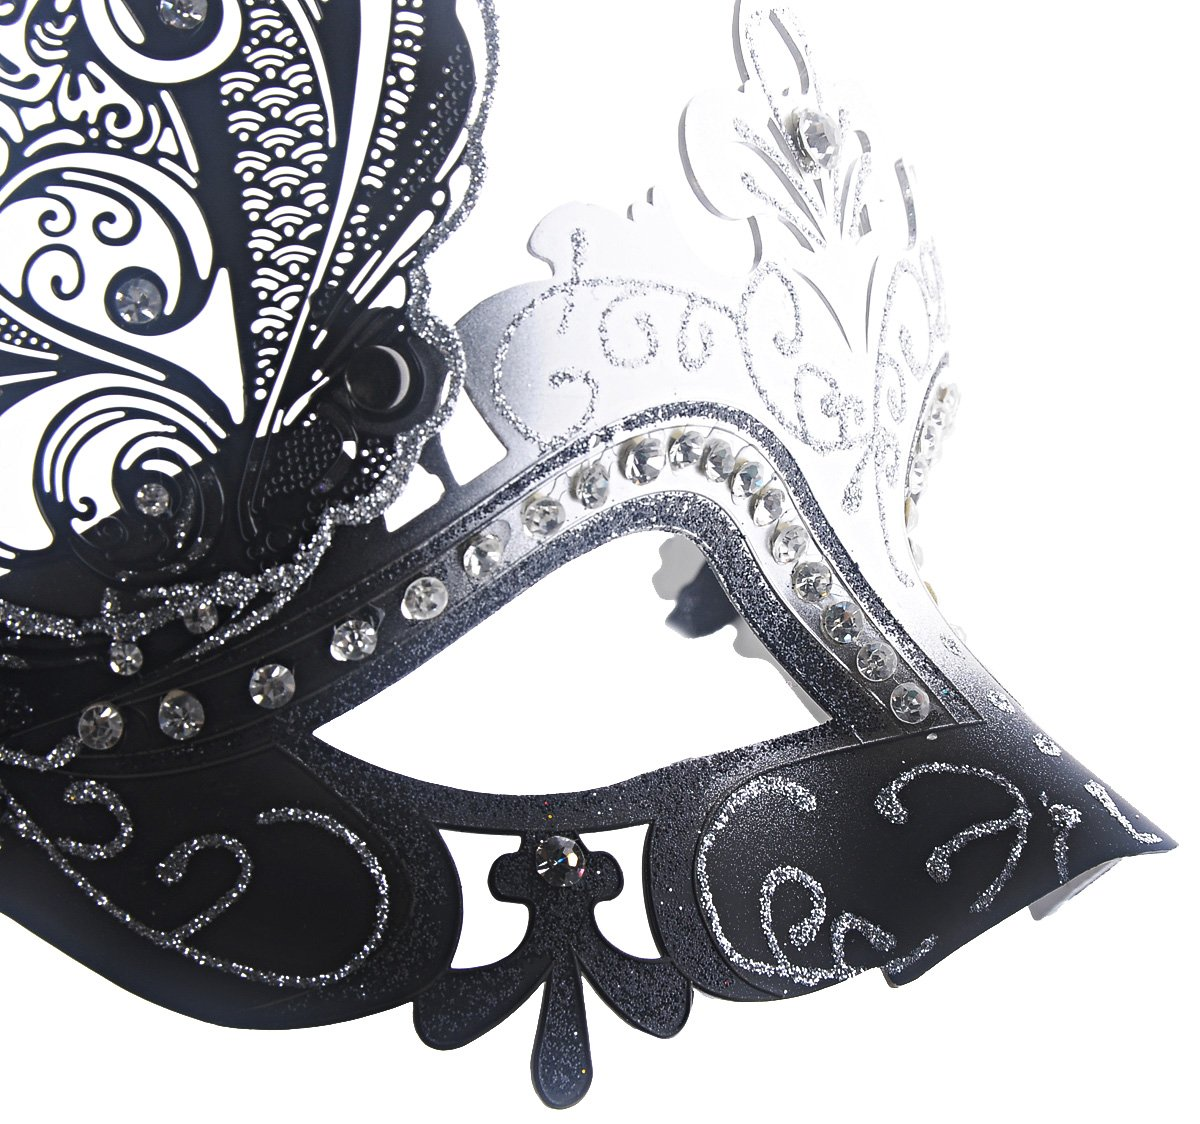 Coxeer Venetian Mask Halloween Mask Party Mask Vintage Masquerade Mask for Prom 4